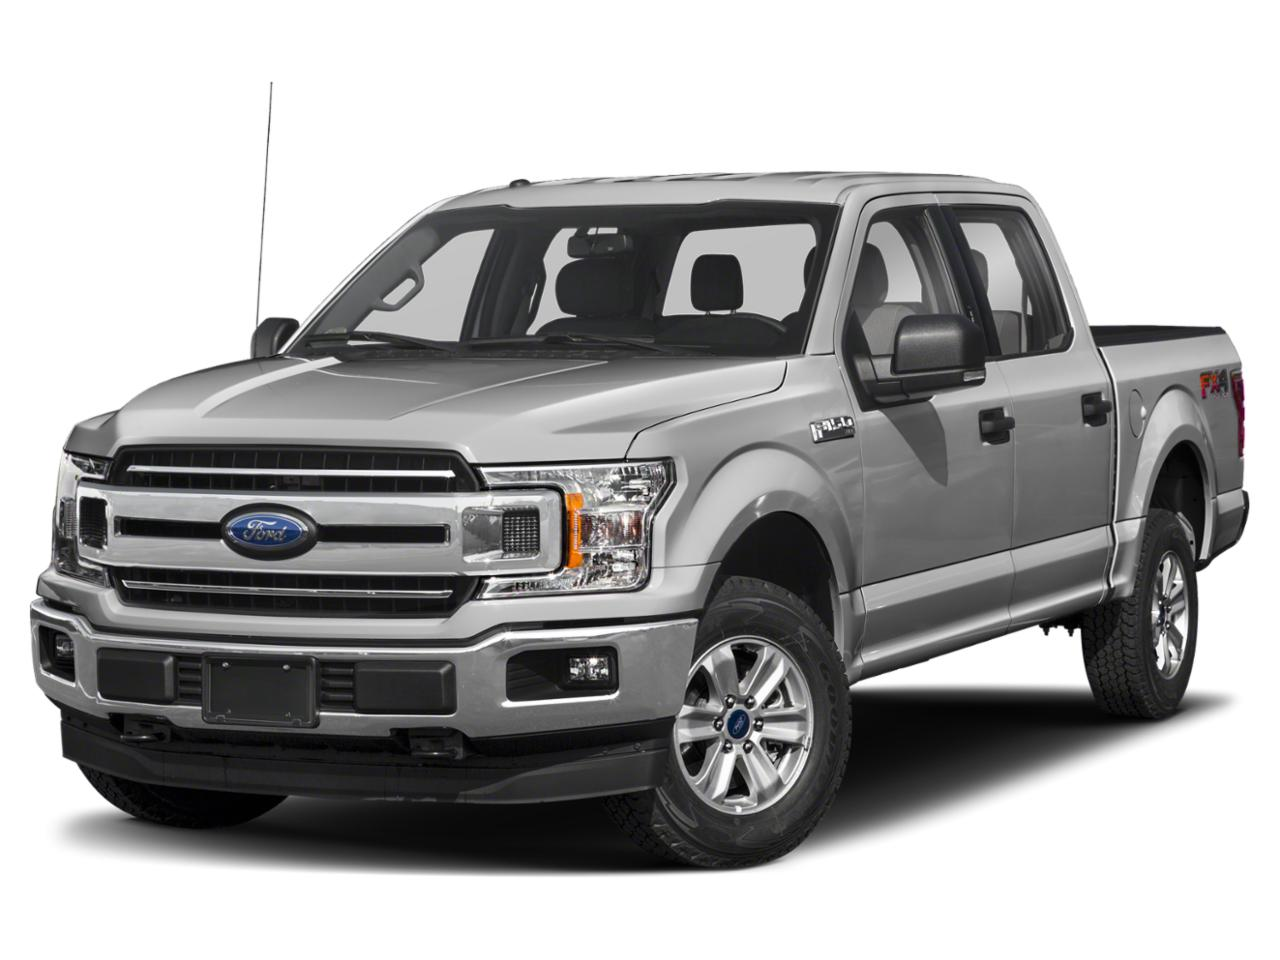 2018 Ford F-150 Vehicle Photo in Kittanning, PA 16201